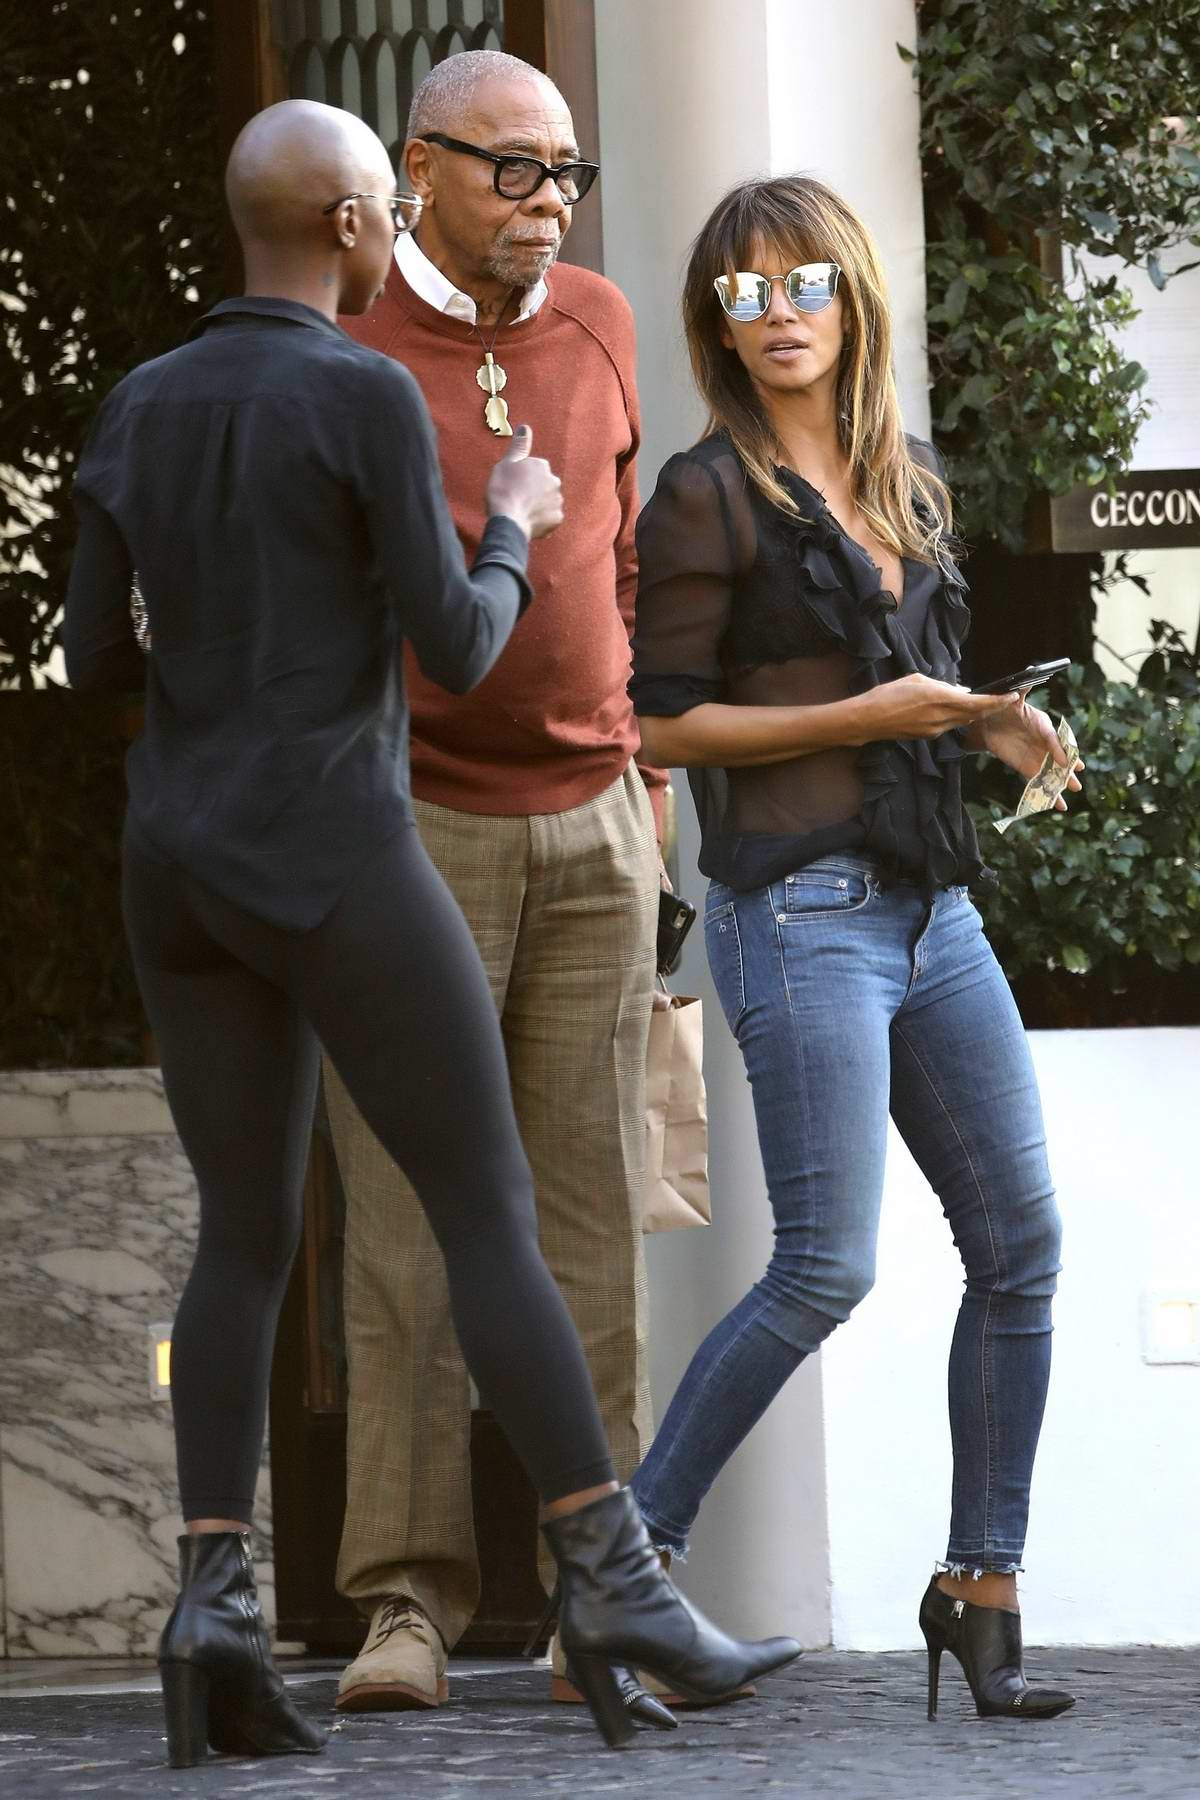 Halle Berry chats with her friends at valet after having lunch at Cecconi's in West Hollywood, Los Angeles